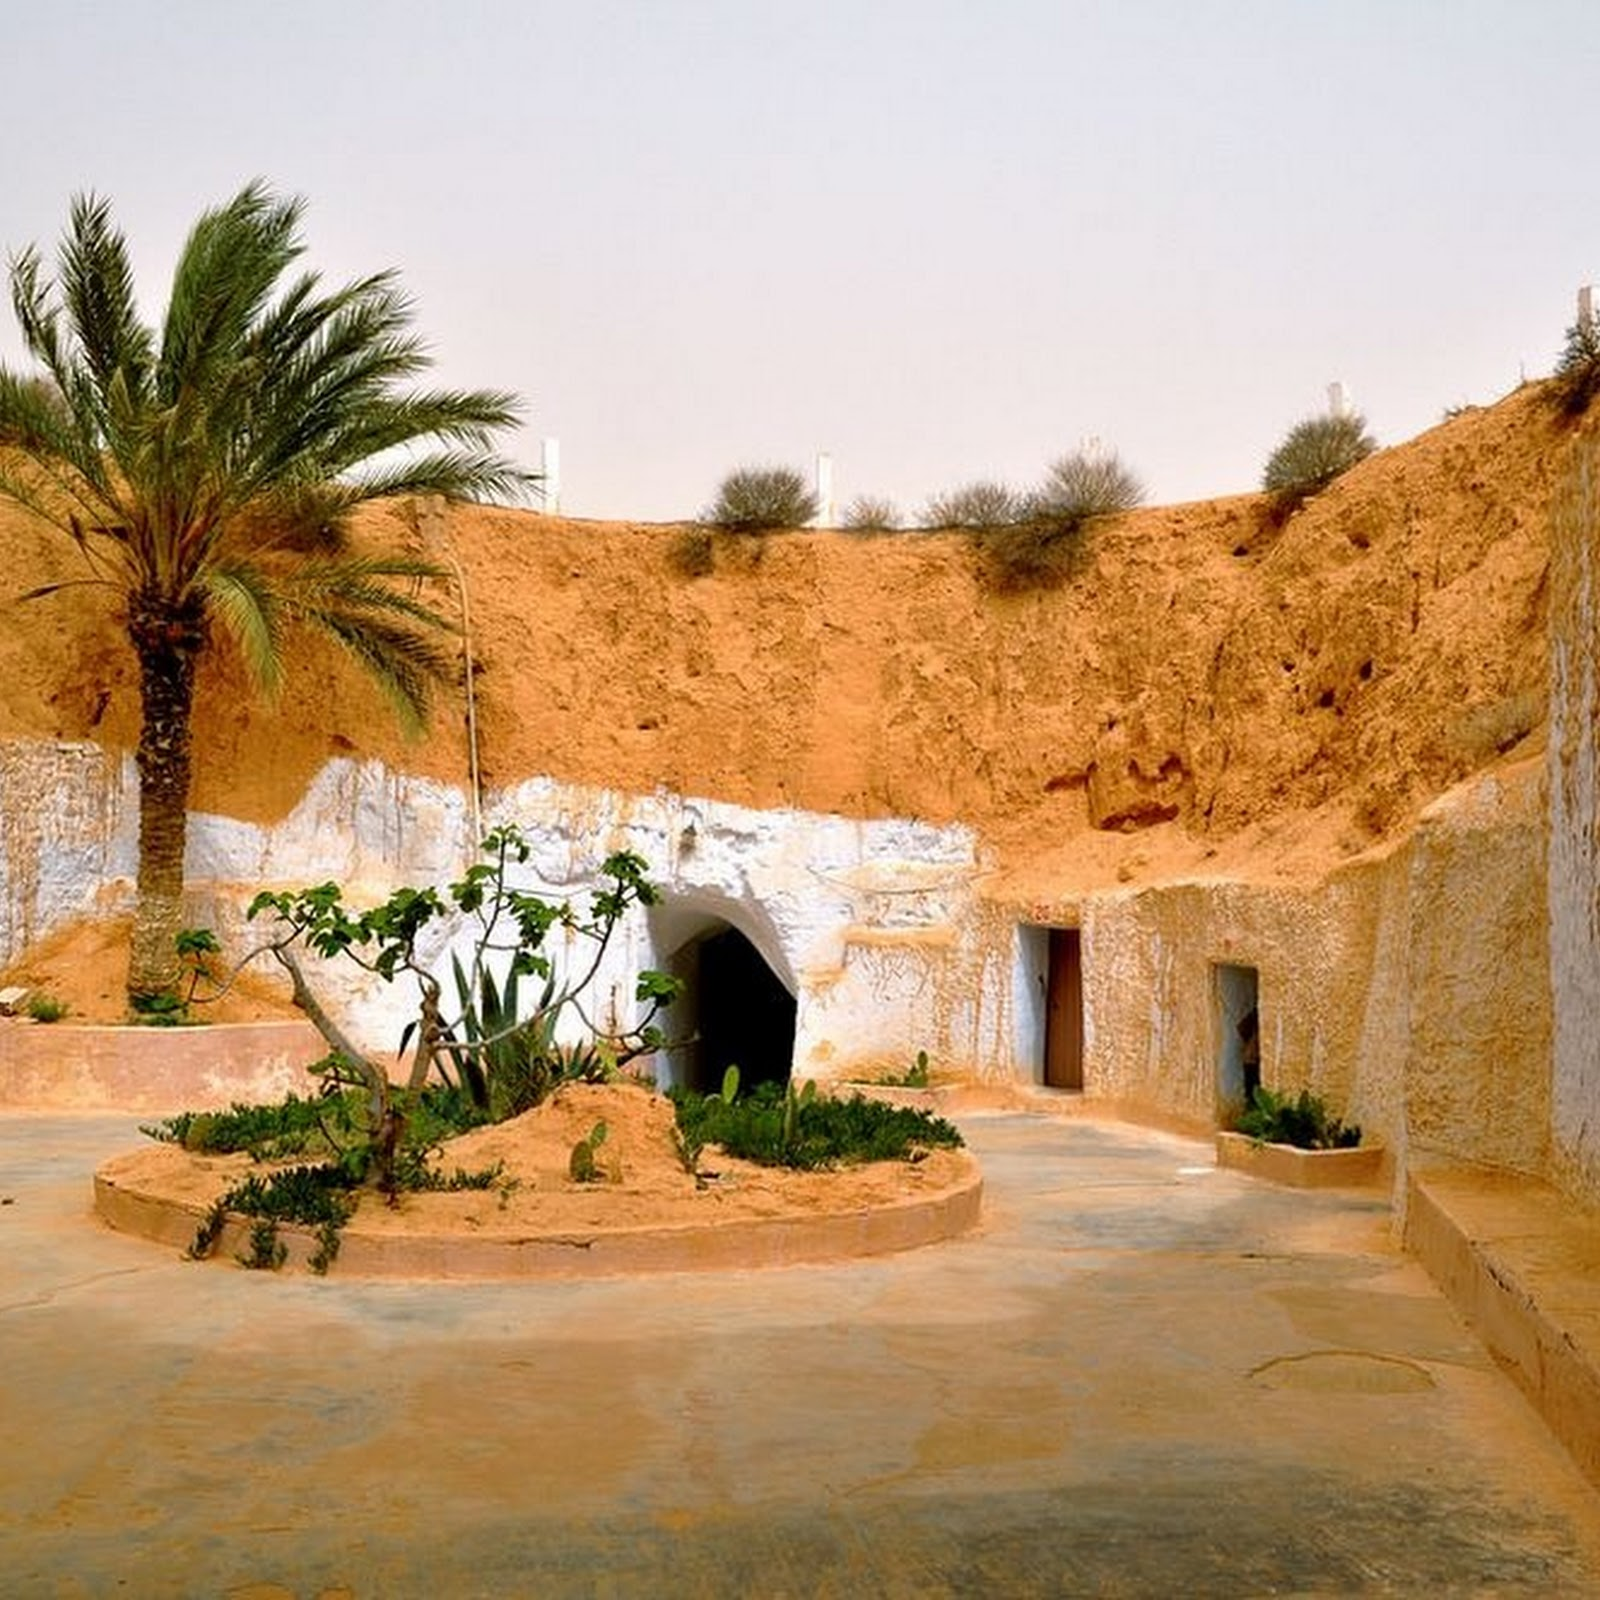 The Underground Homes of Matmata, Tunisia